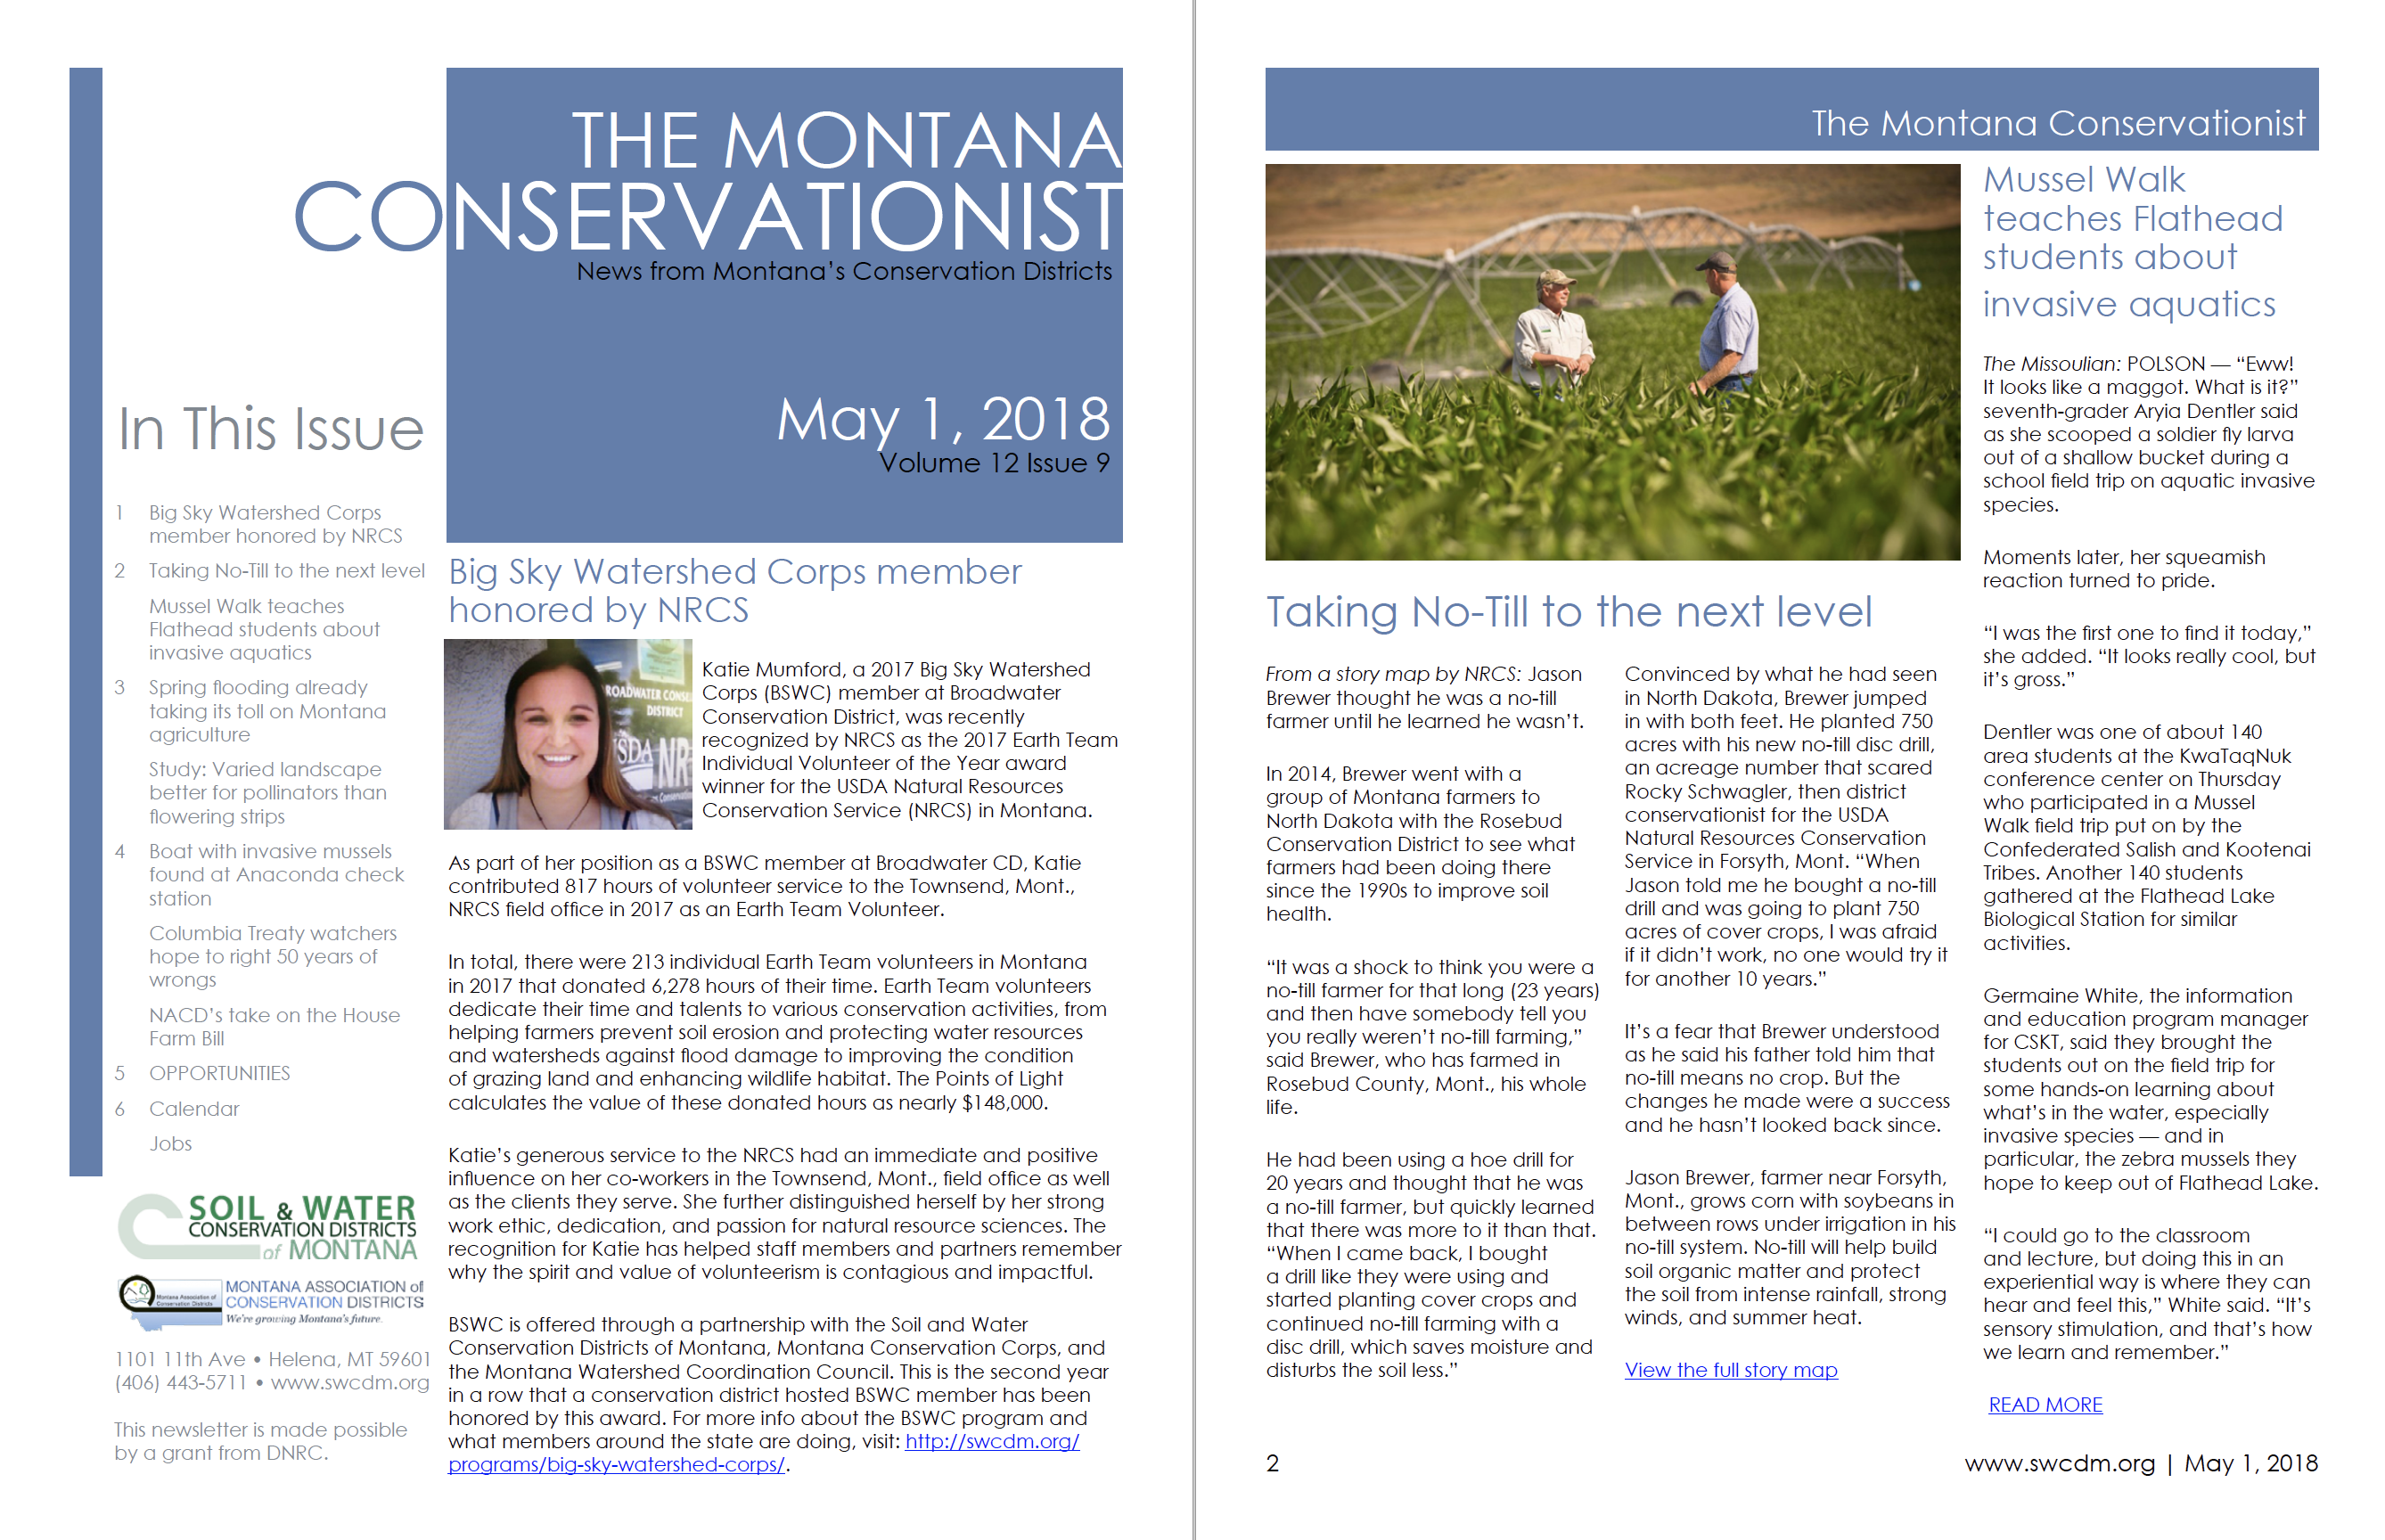 The Montana Conservationist, May 1